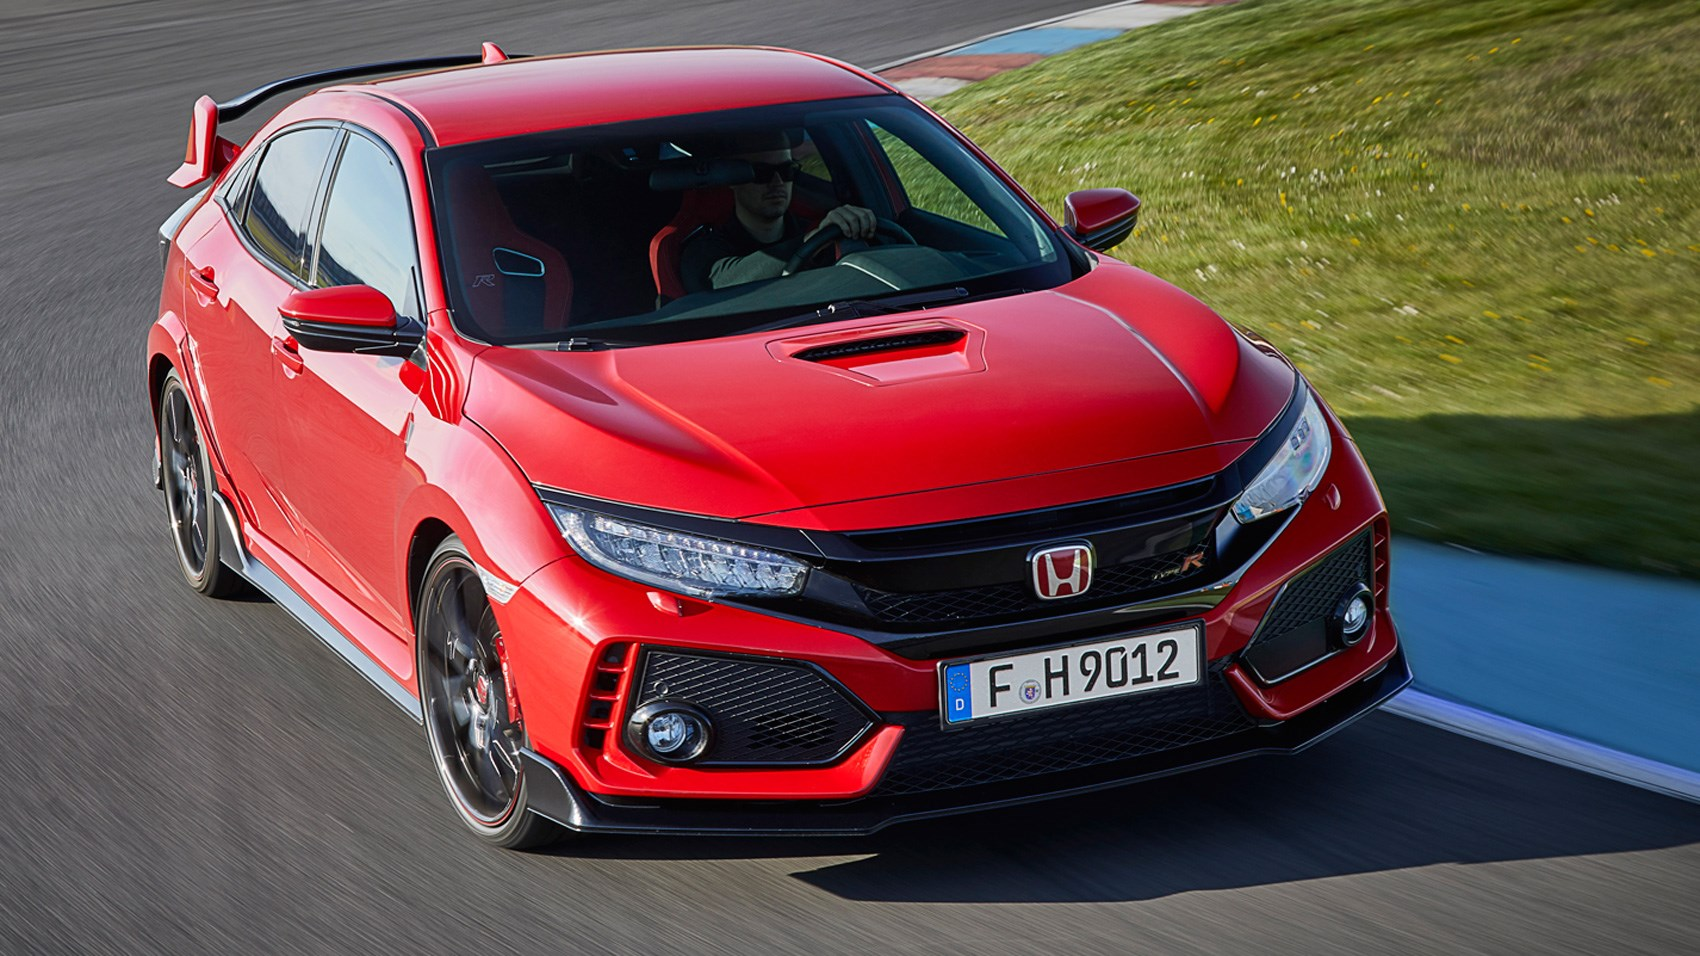 honda civic type r 2017 review by car magazine. Black Bedroom Furniture Sets. Home Design Ideas